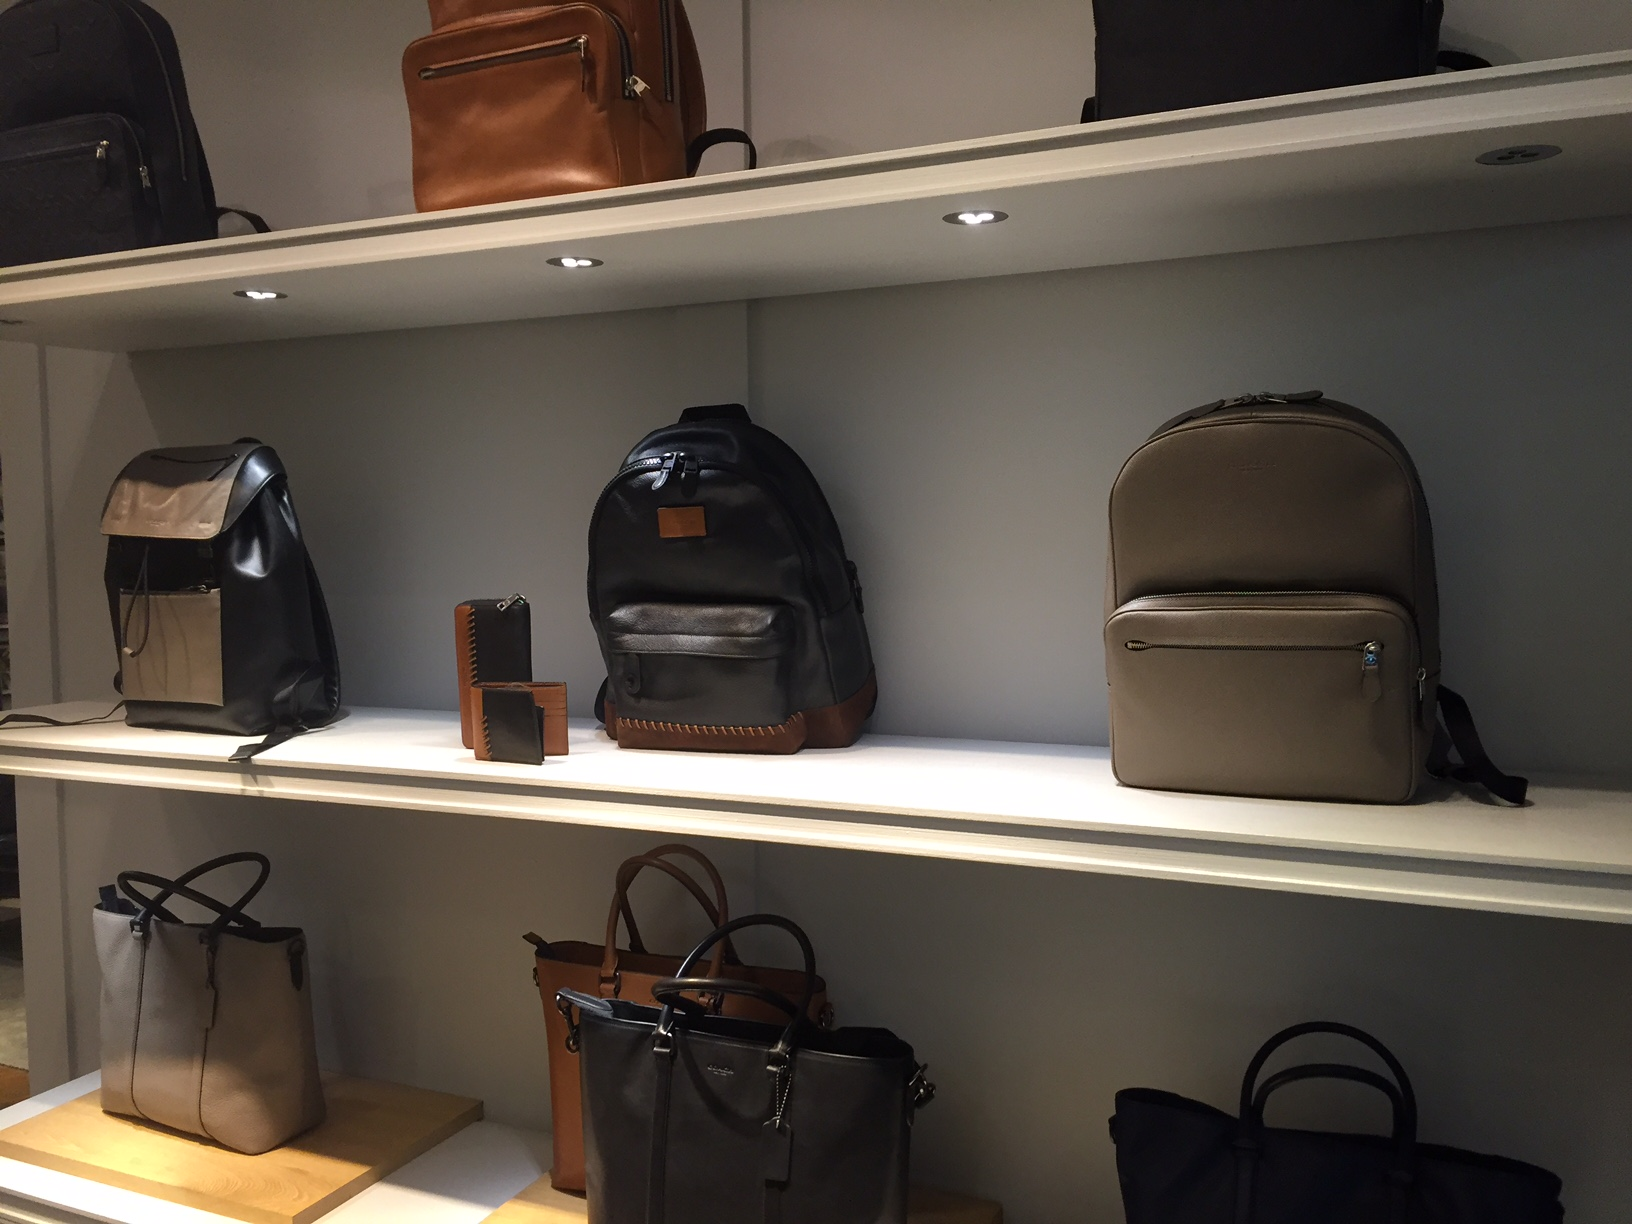 Bags. Muted.